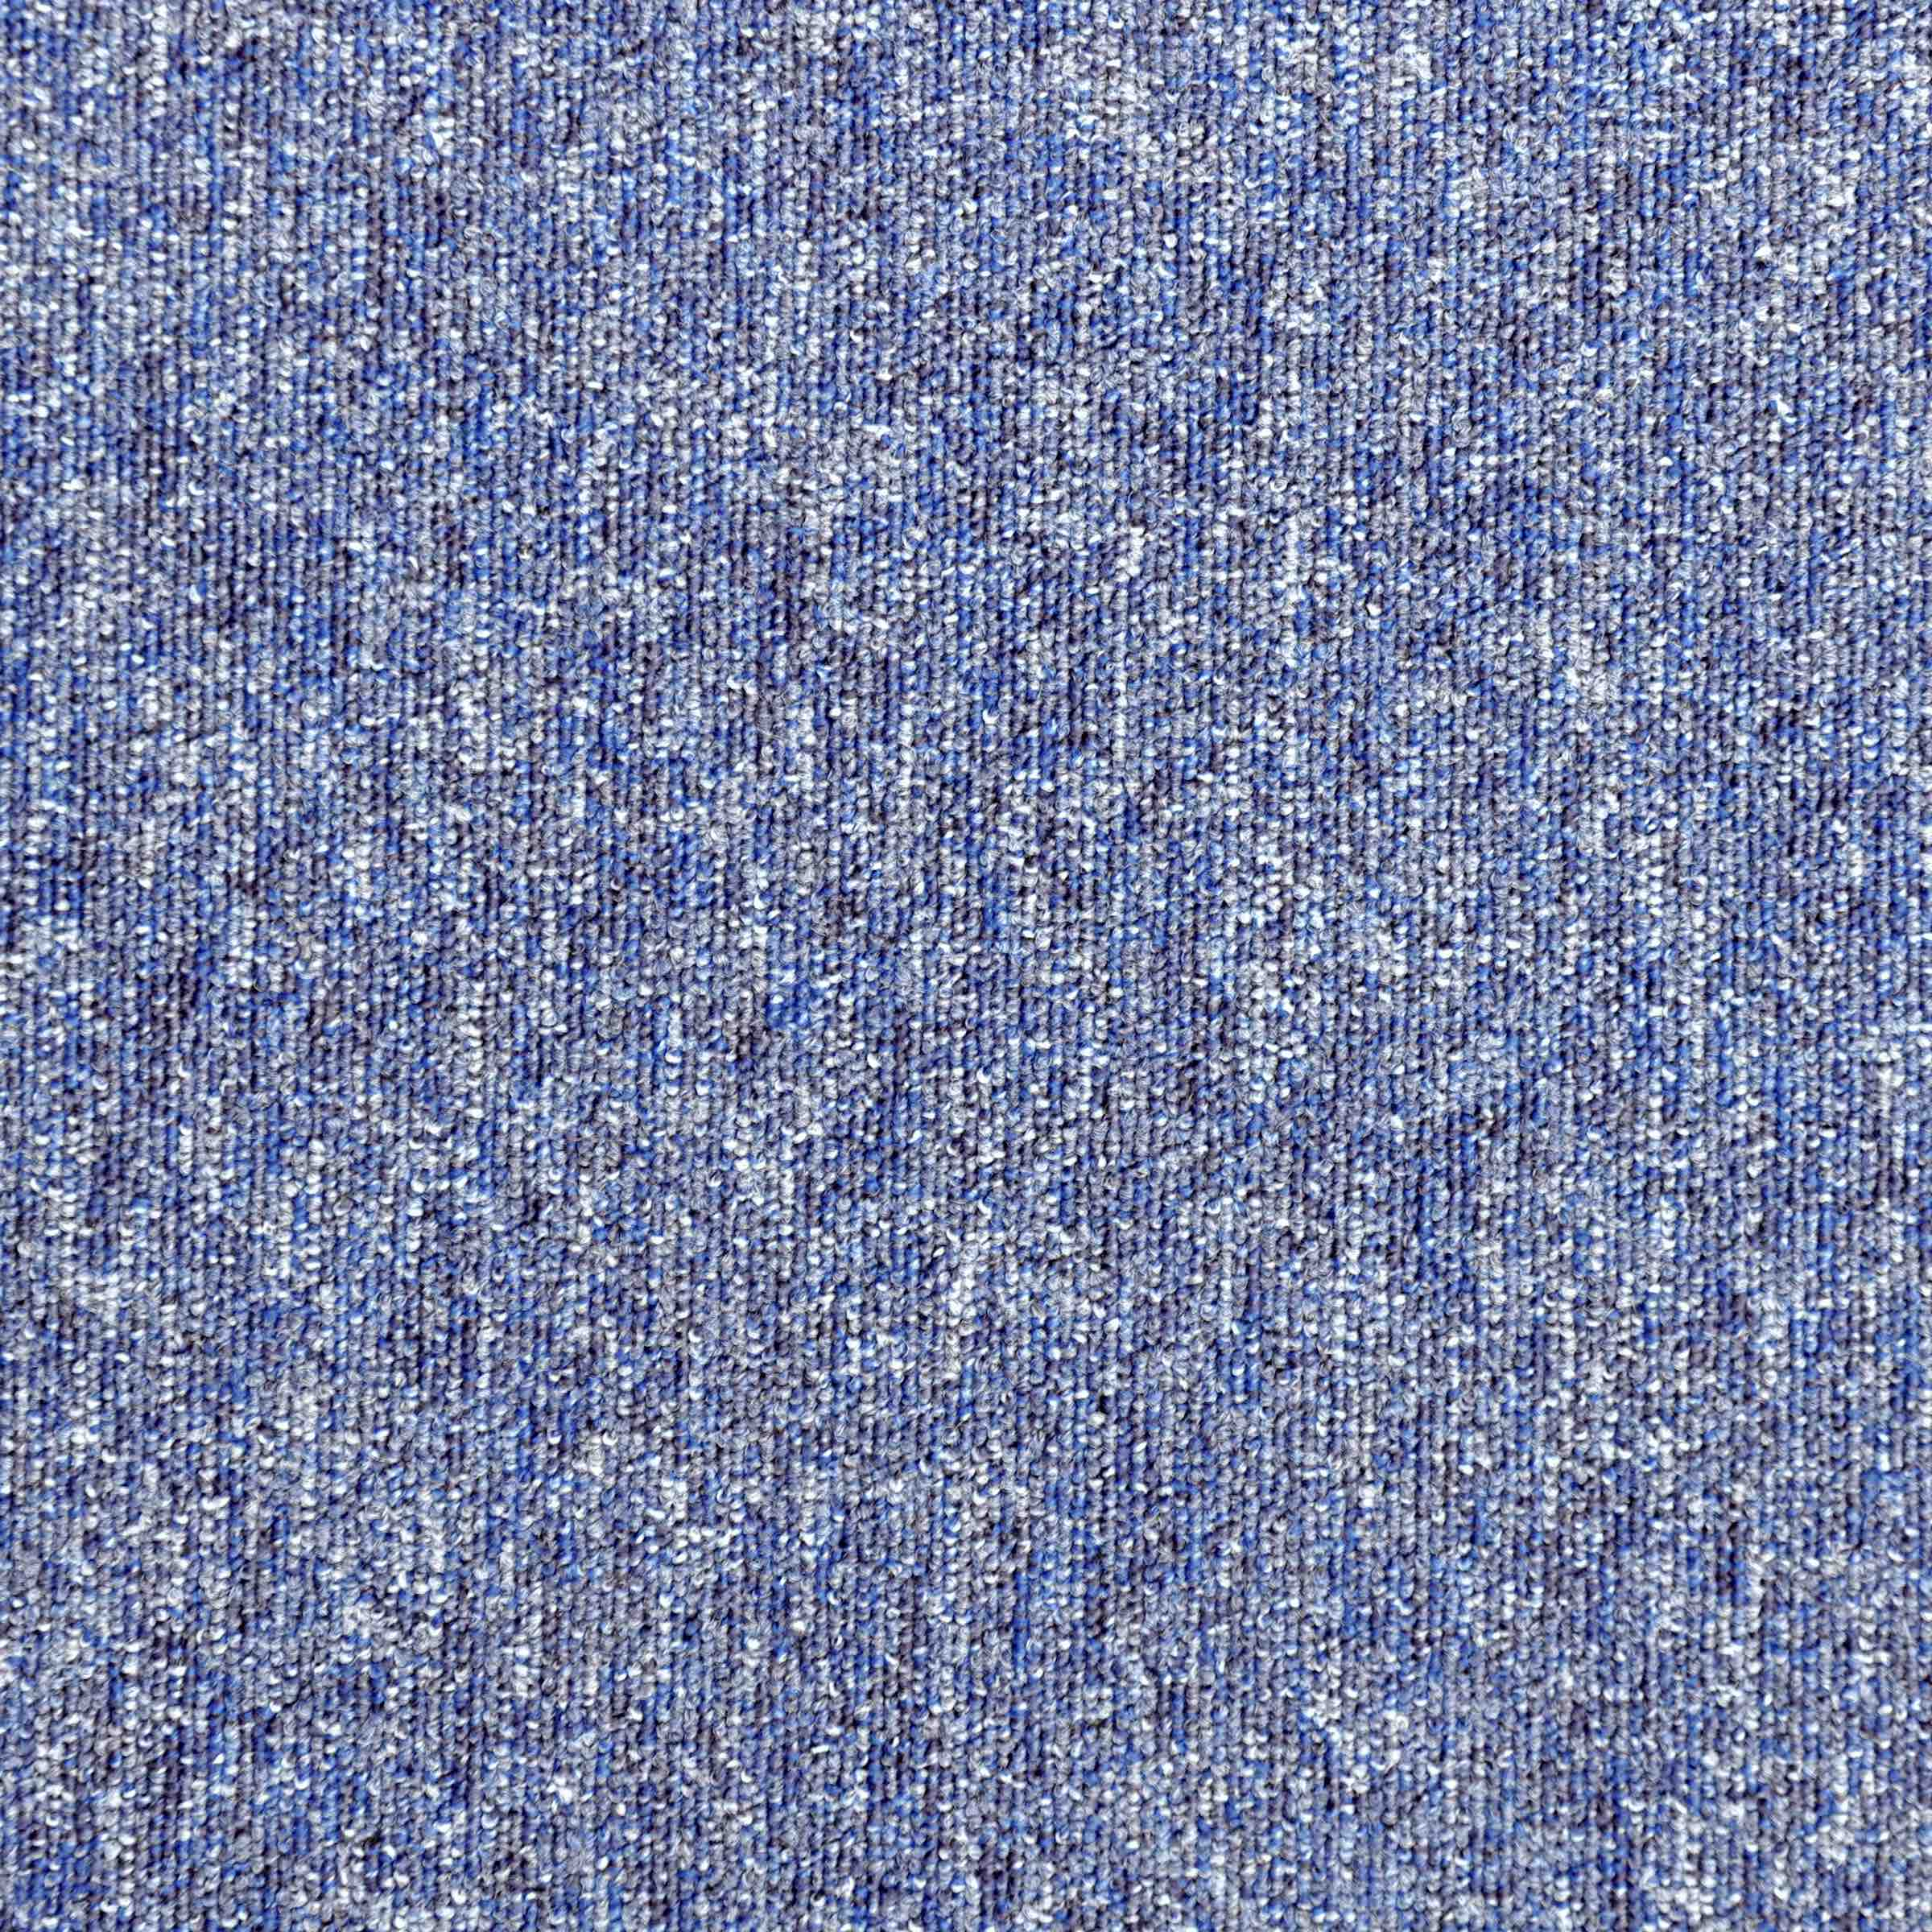 Vital | 6310 | Paragon Carpet Tiles | Commercial Carpet Tiles